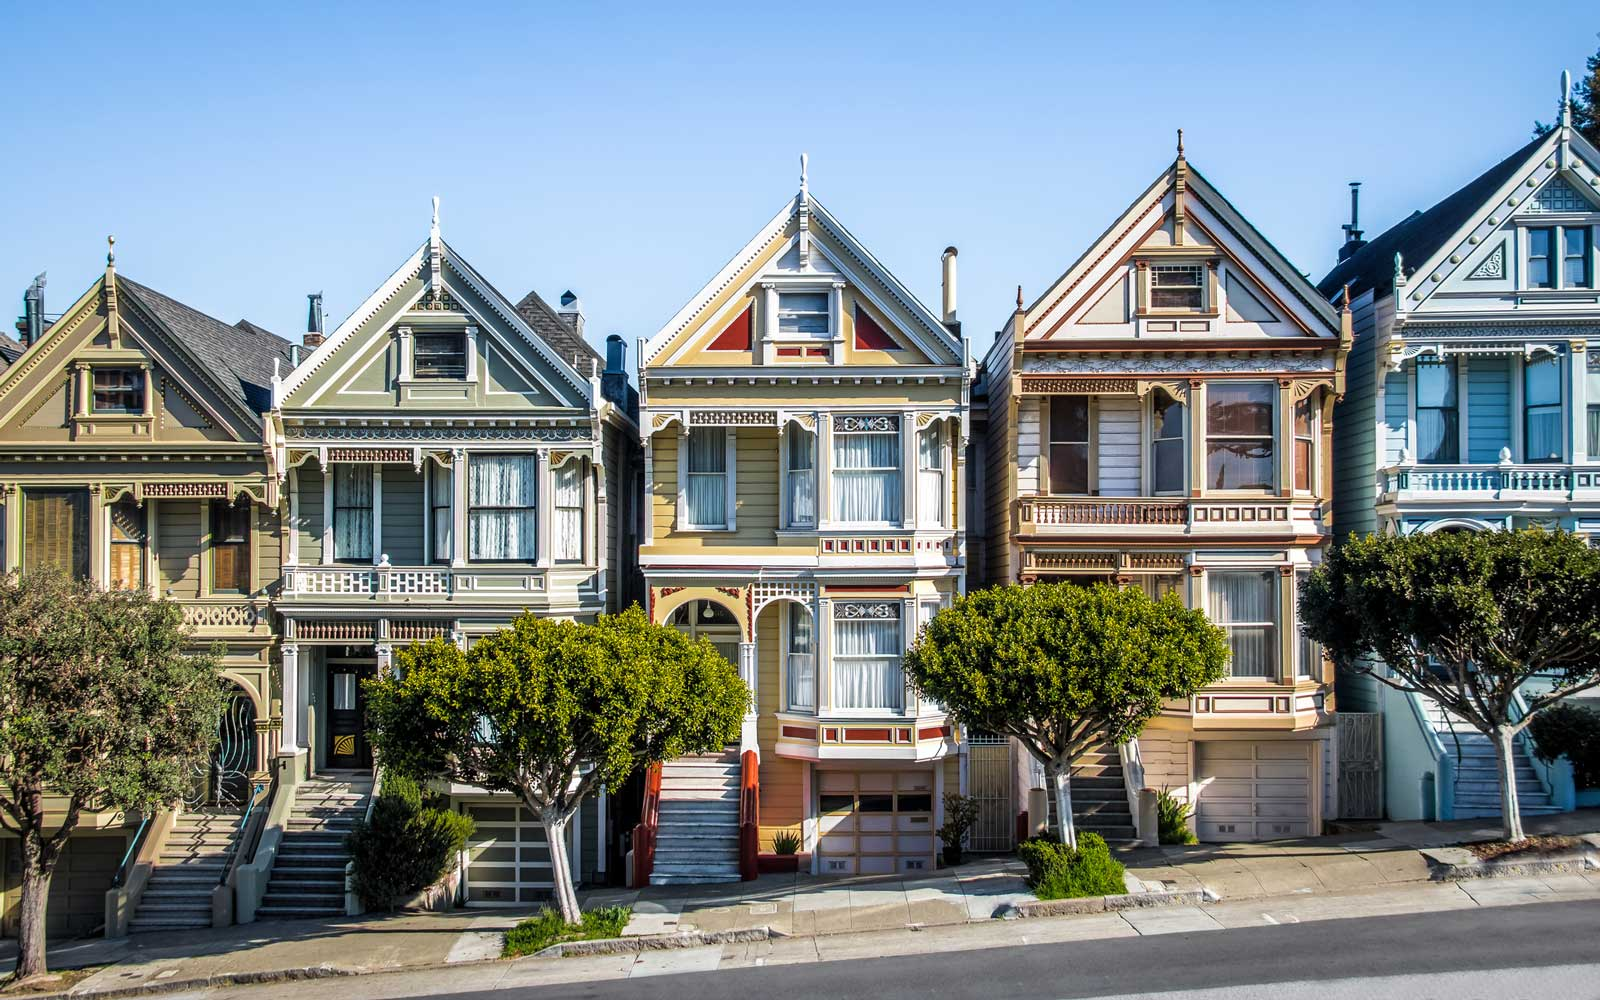 Tour Buses Are Now Banned From Going to the 'Full House' Home in San Francisco